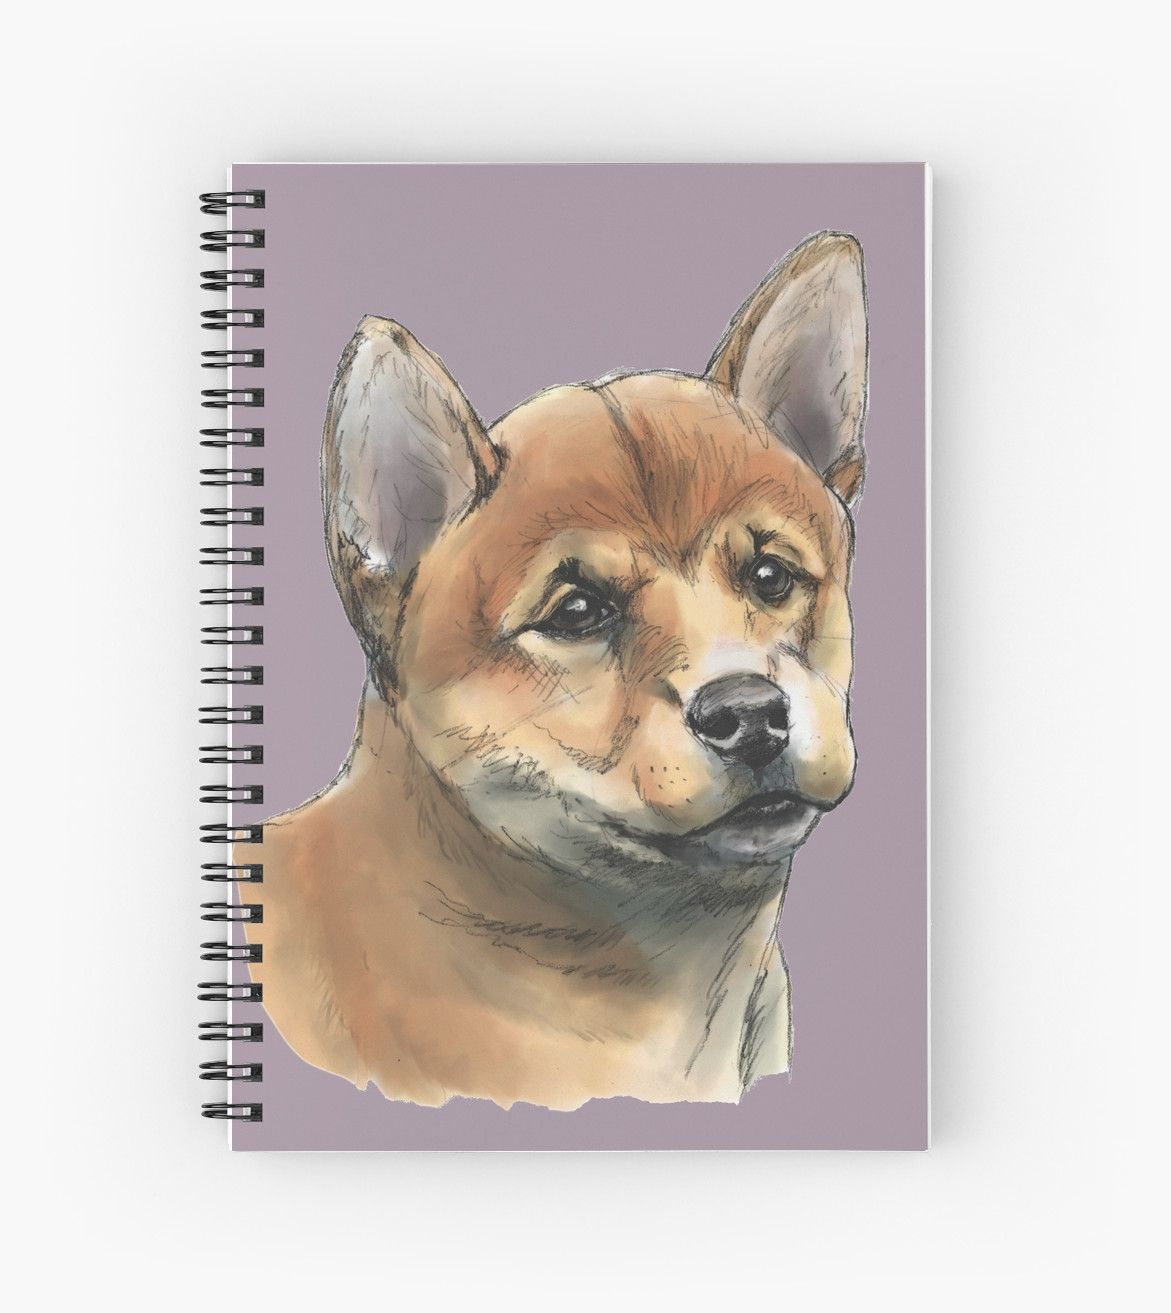 This Is A Rendering Of A Shiba Inu Dog Having A Peaceful Look On Its Face It Was Drawn With Pencil And Then Colored Digitally With Shiba Inu Puppy Drawing Shiba